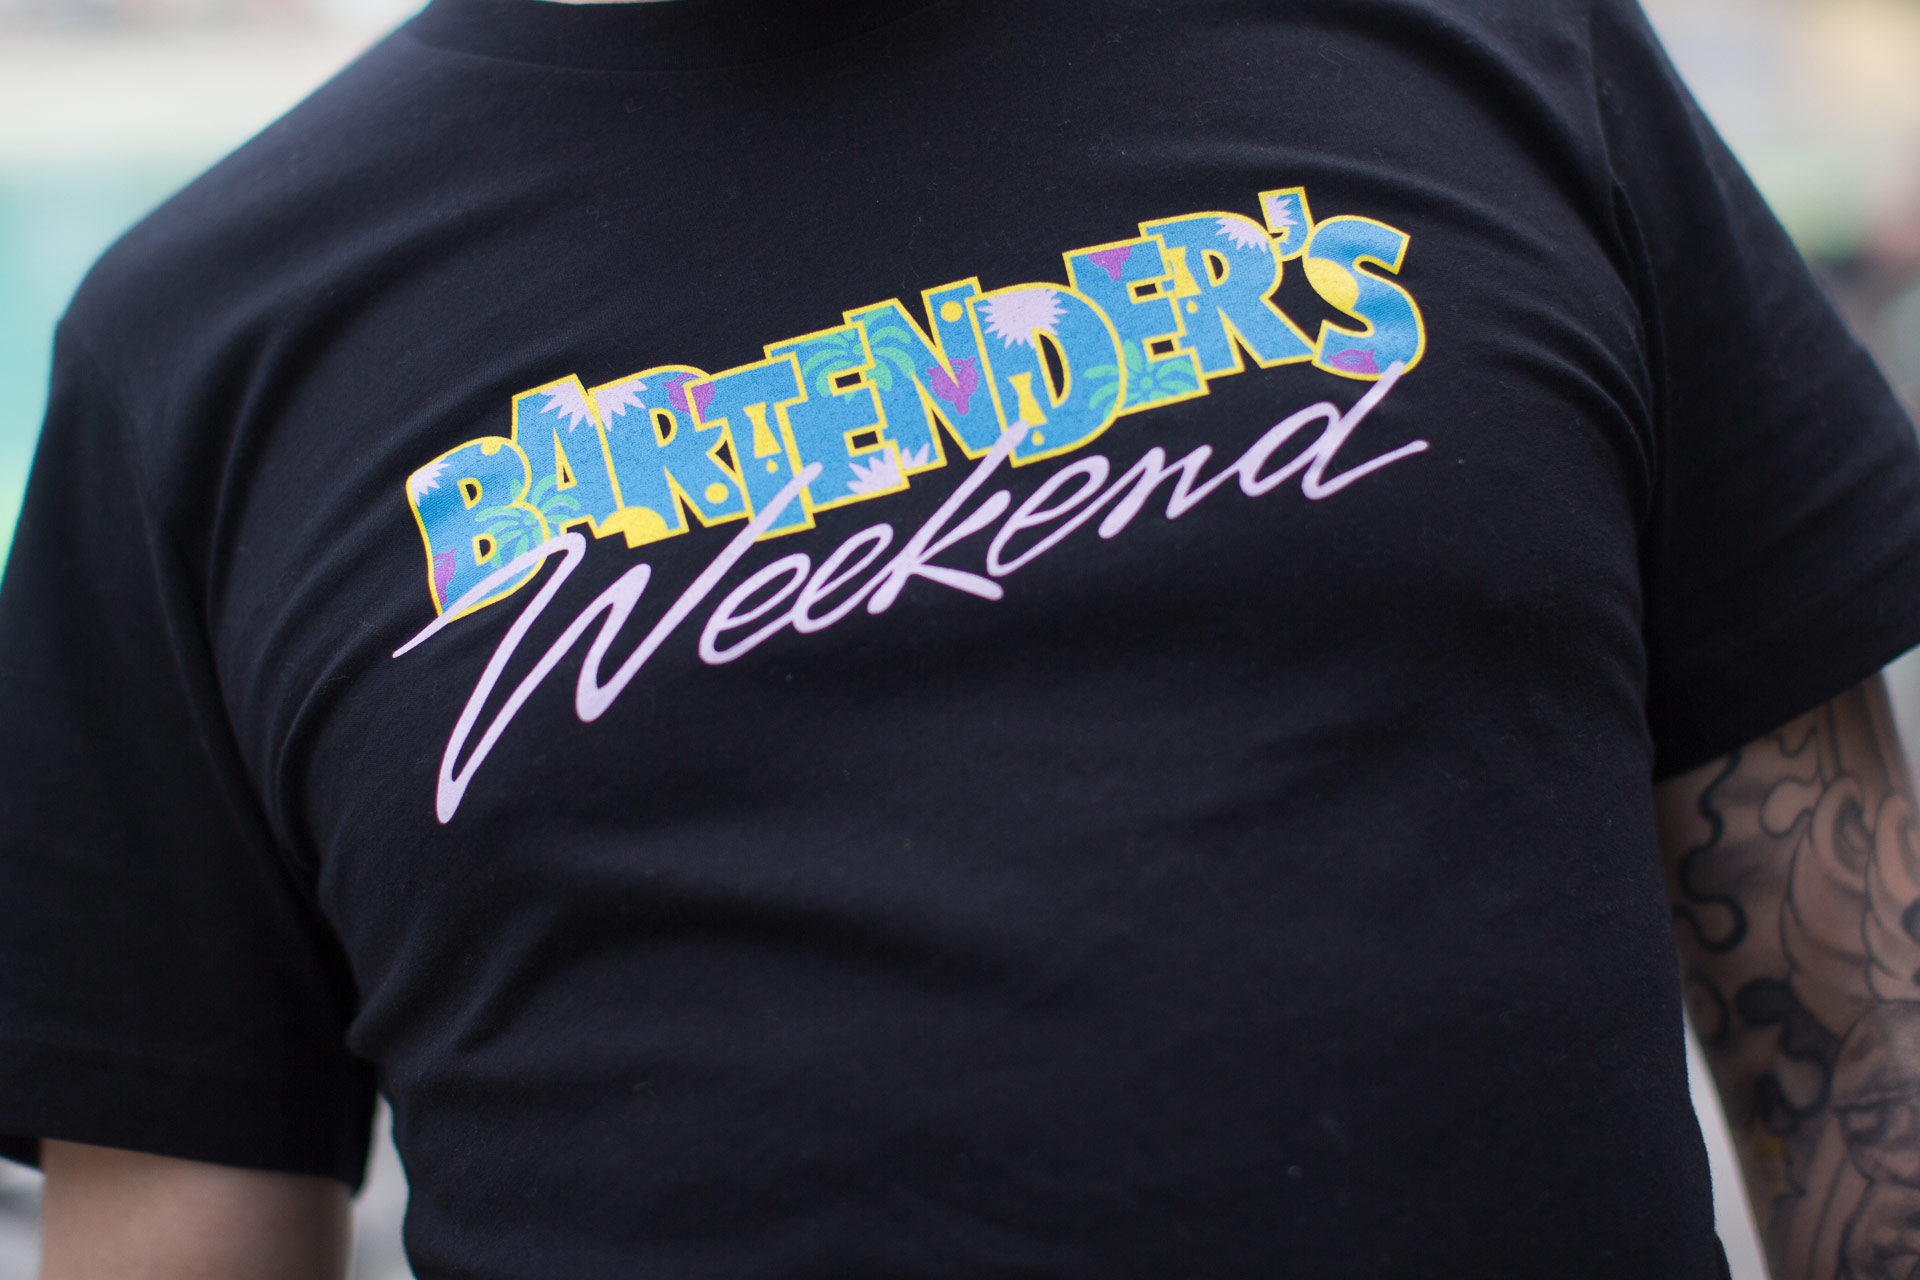 Bartender's Weekend Shirt